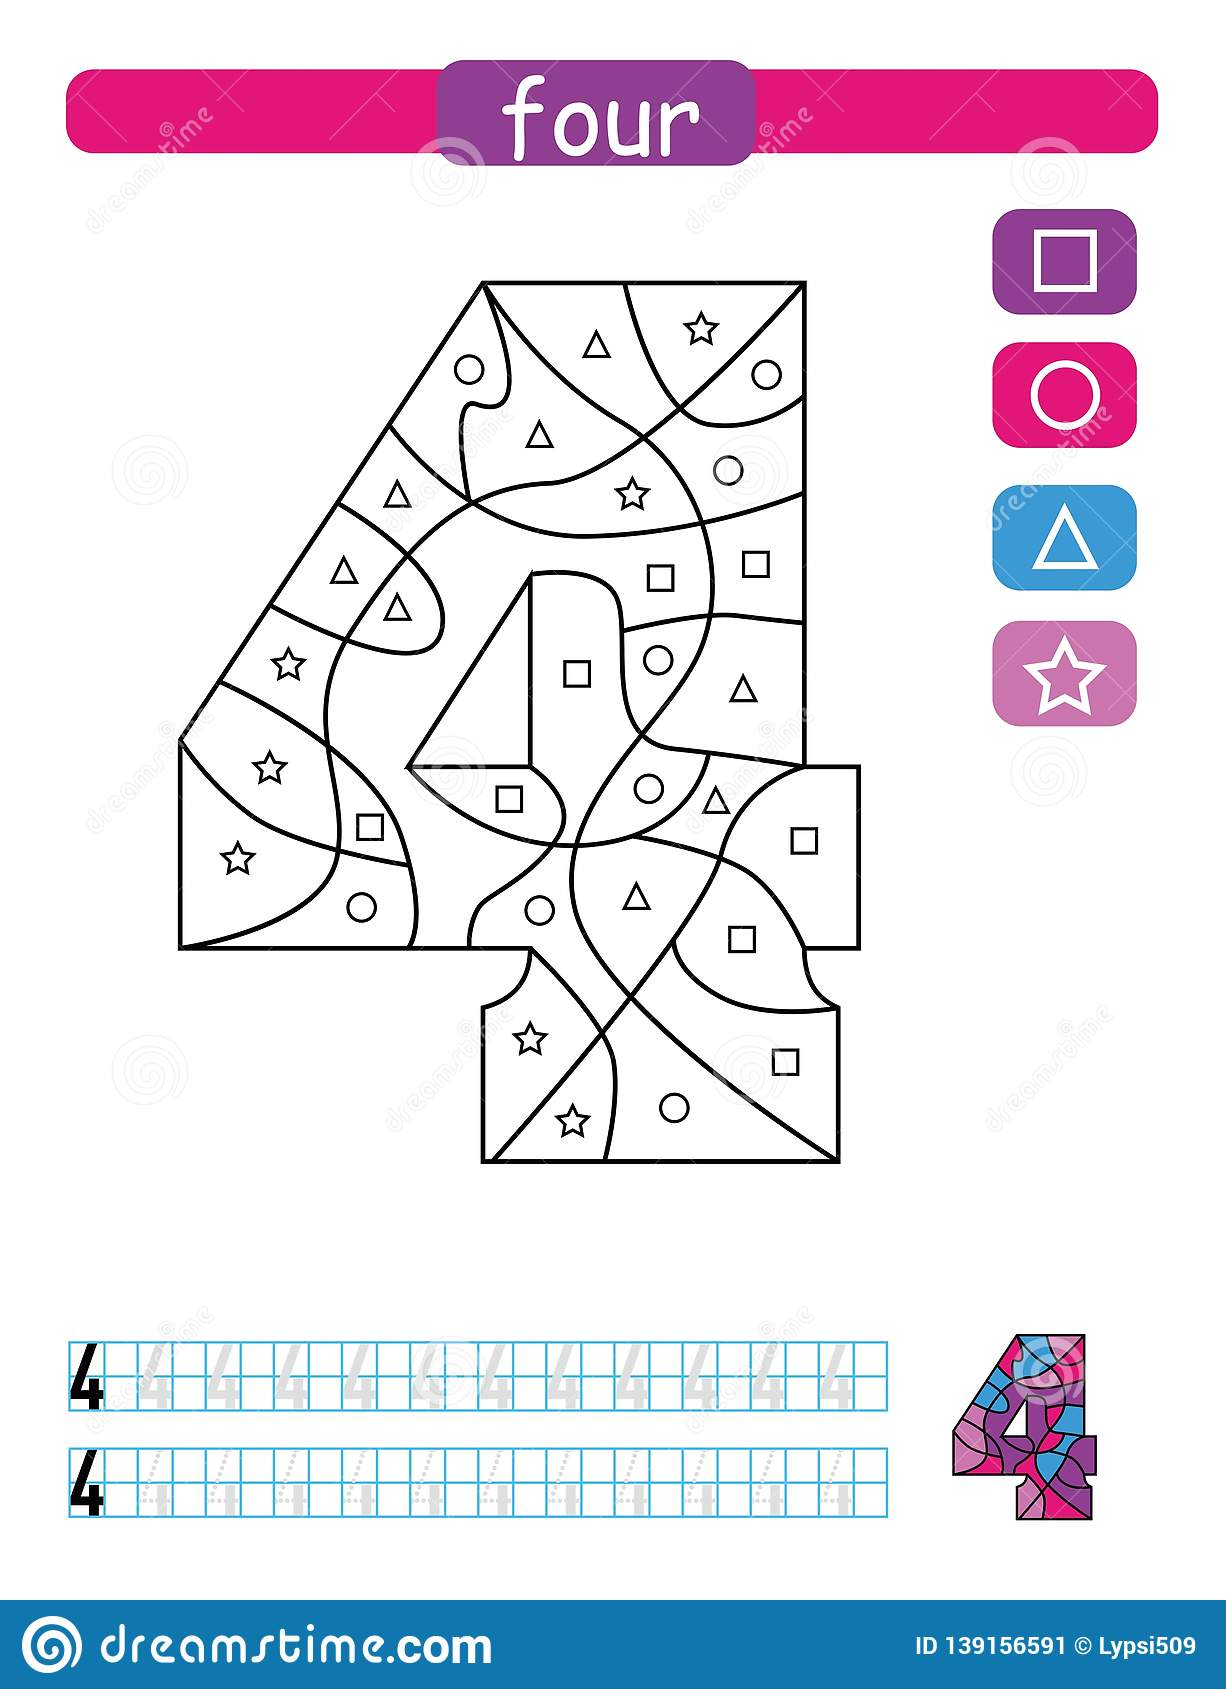 Coloring Printable Worksheet For Kindergarten And Preschool Learning Numbers And Simple Shapes